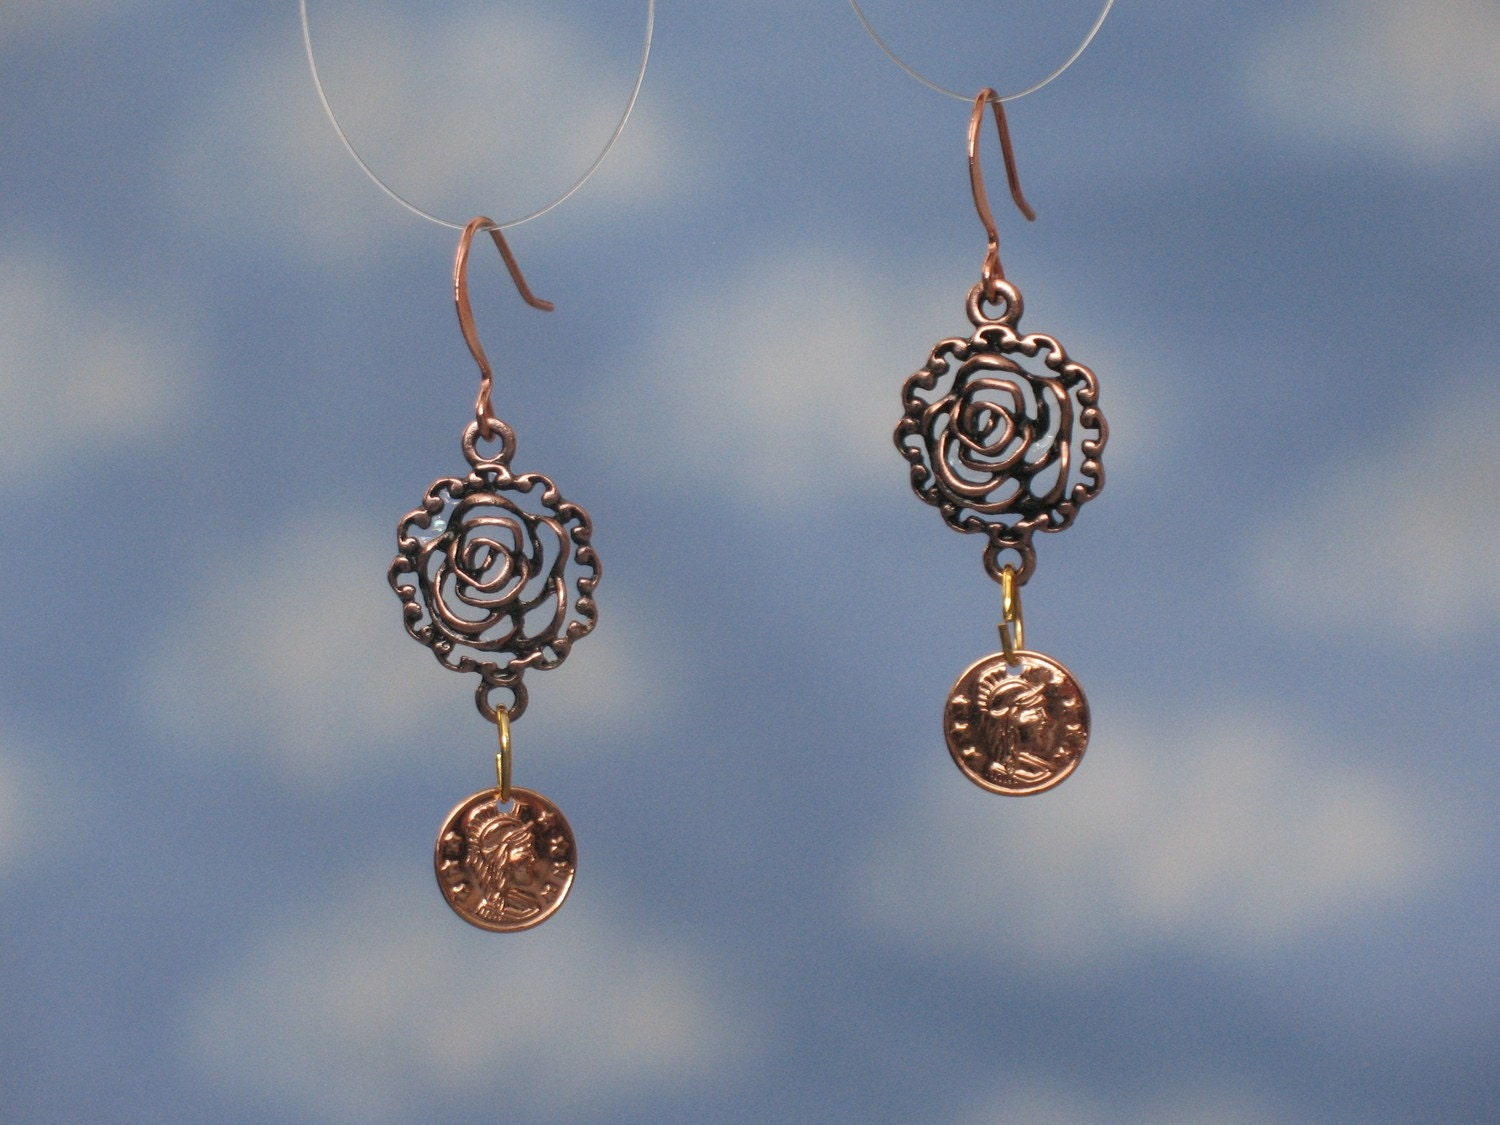 copper rose and Roman coin earrings